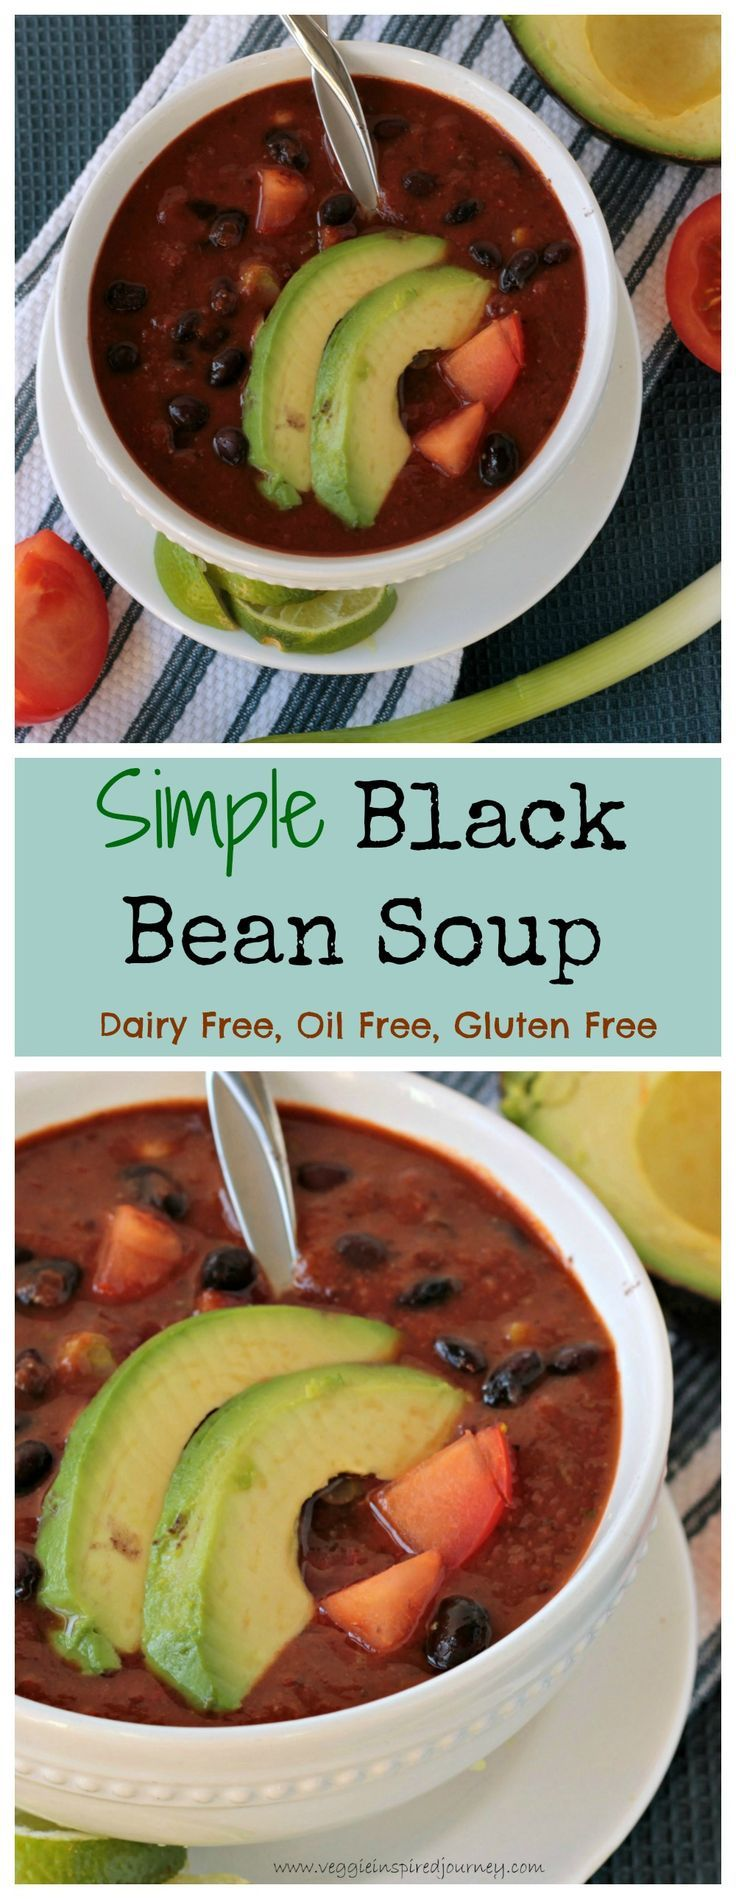 Simple Black Bean Soup - this quick and easy soup is incredibly high in protein and fiber and can be on your table in less than 30 minutes!